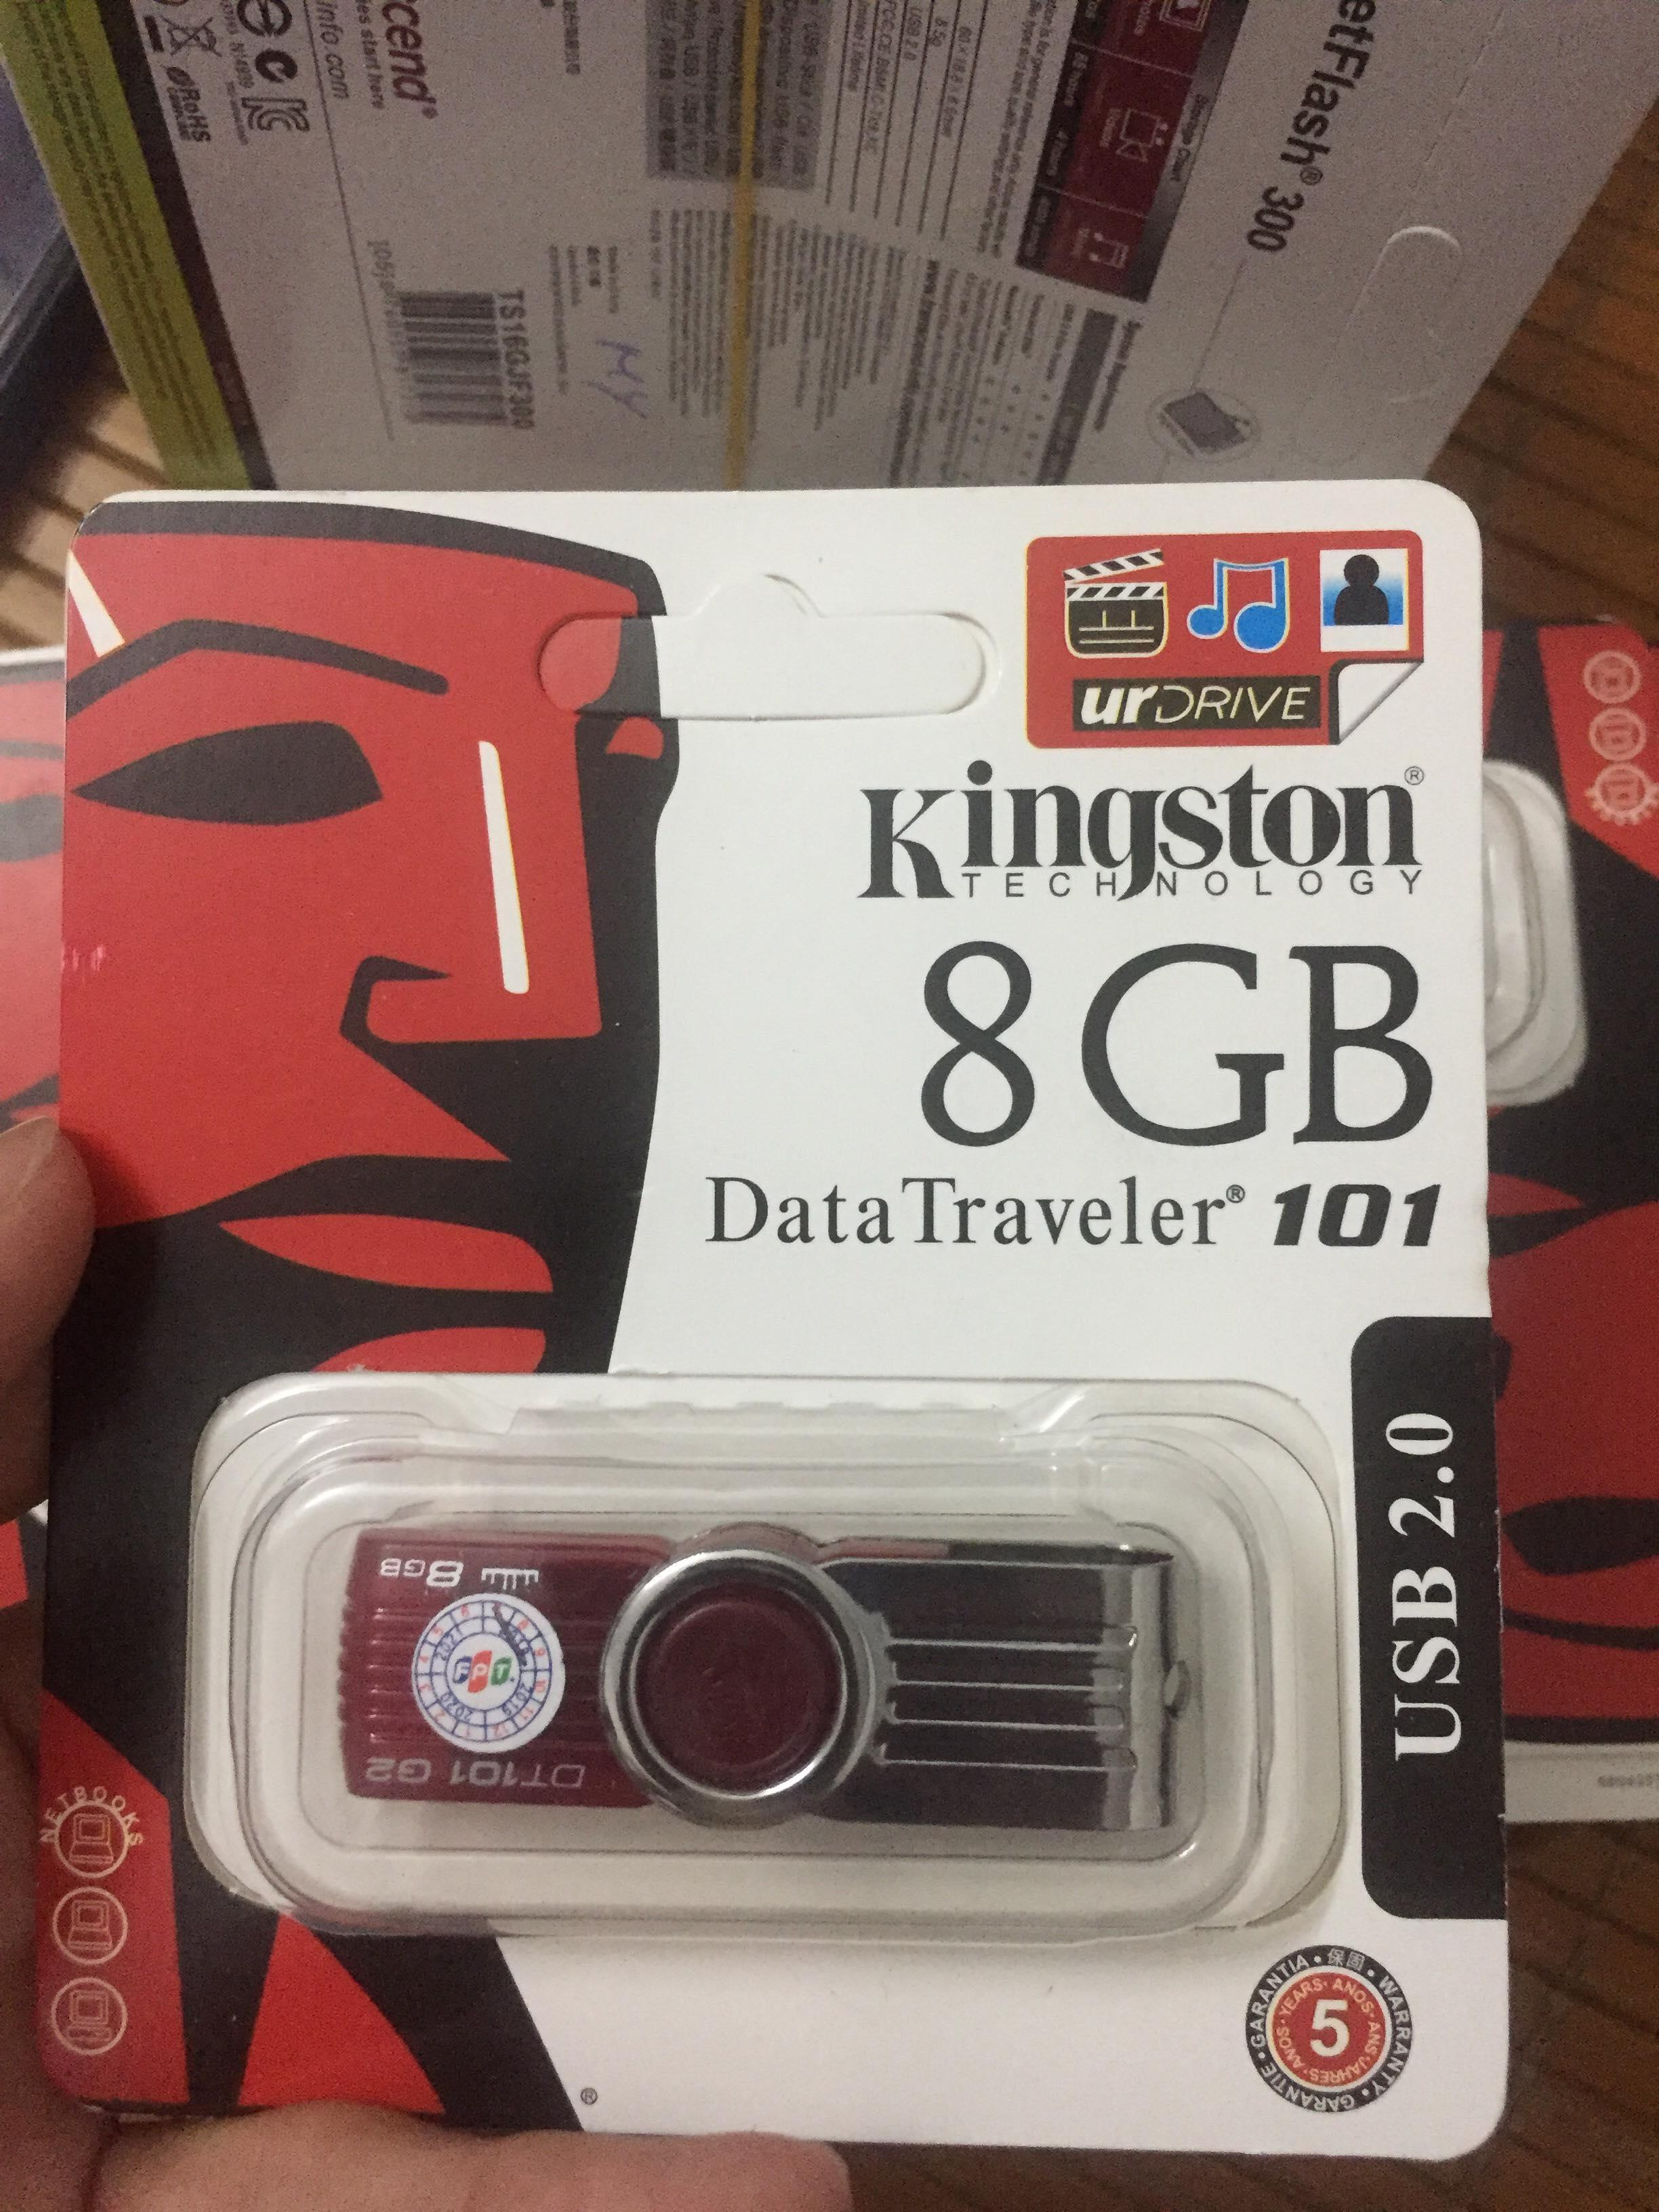 Giá Usb 8gb kingston